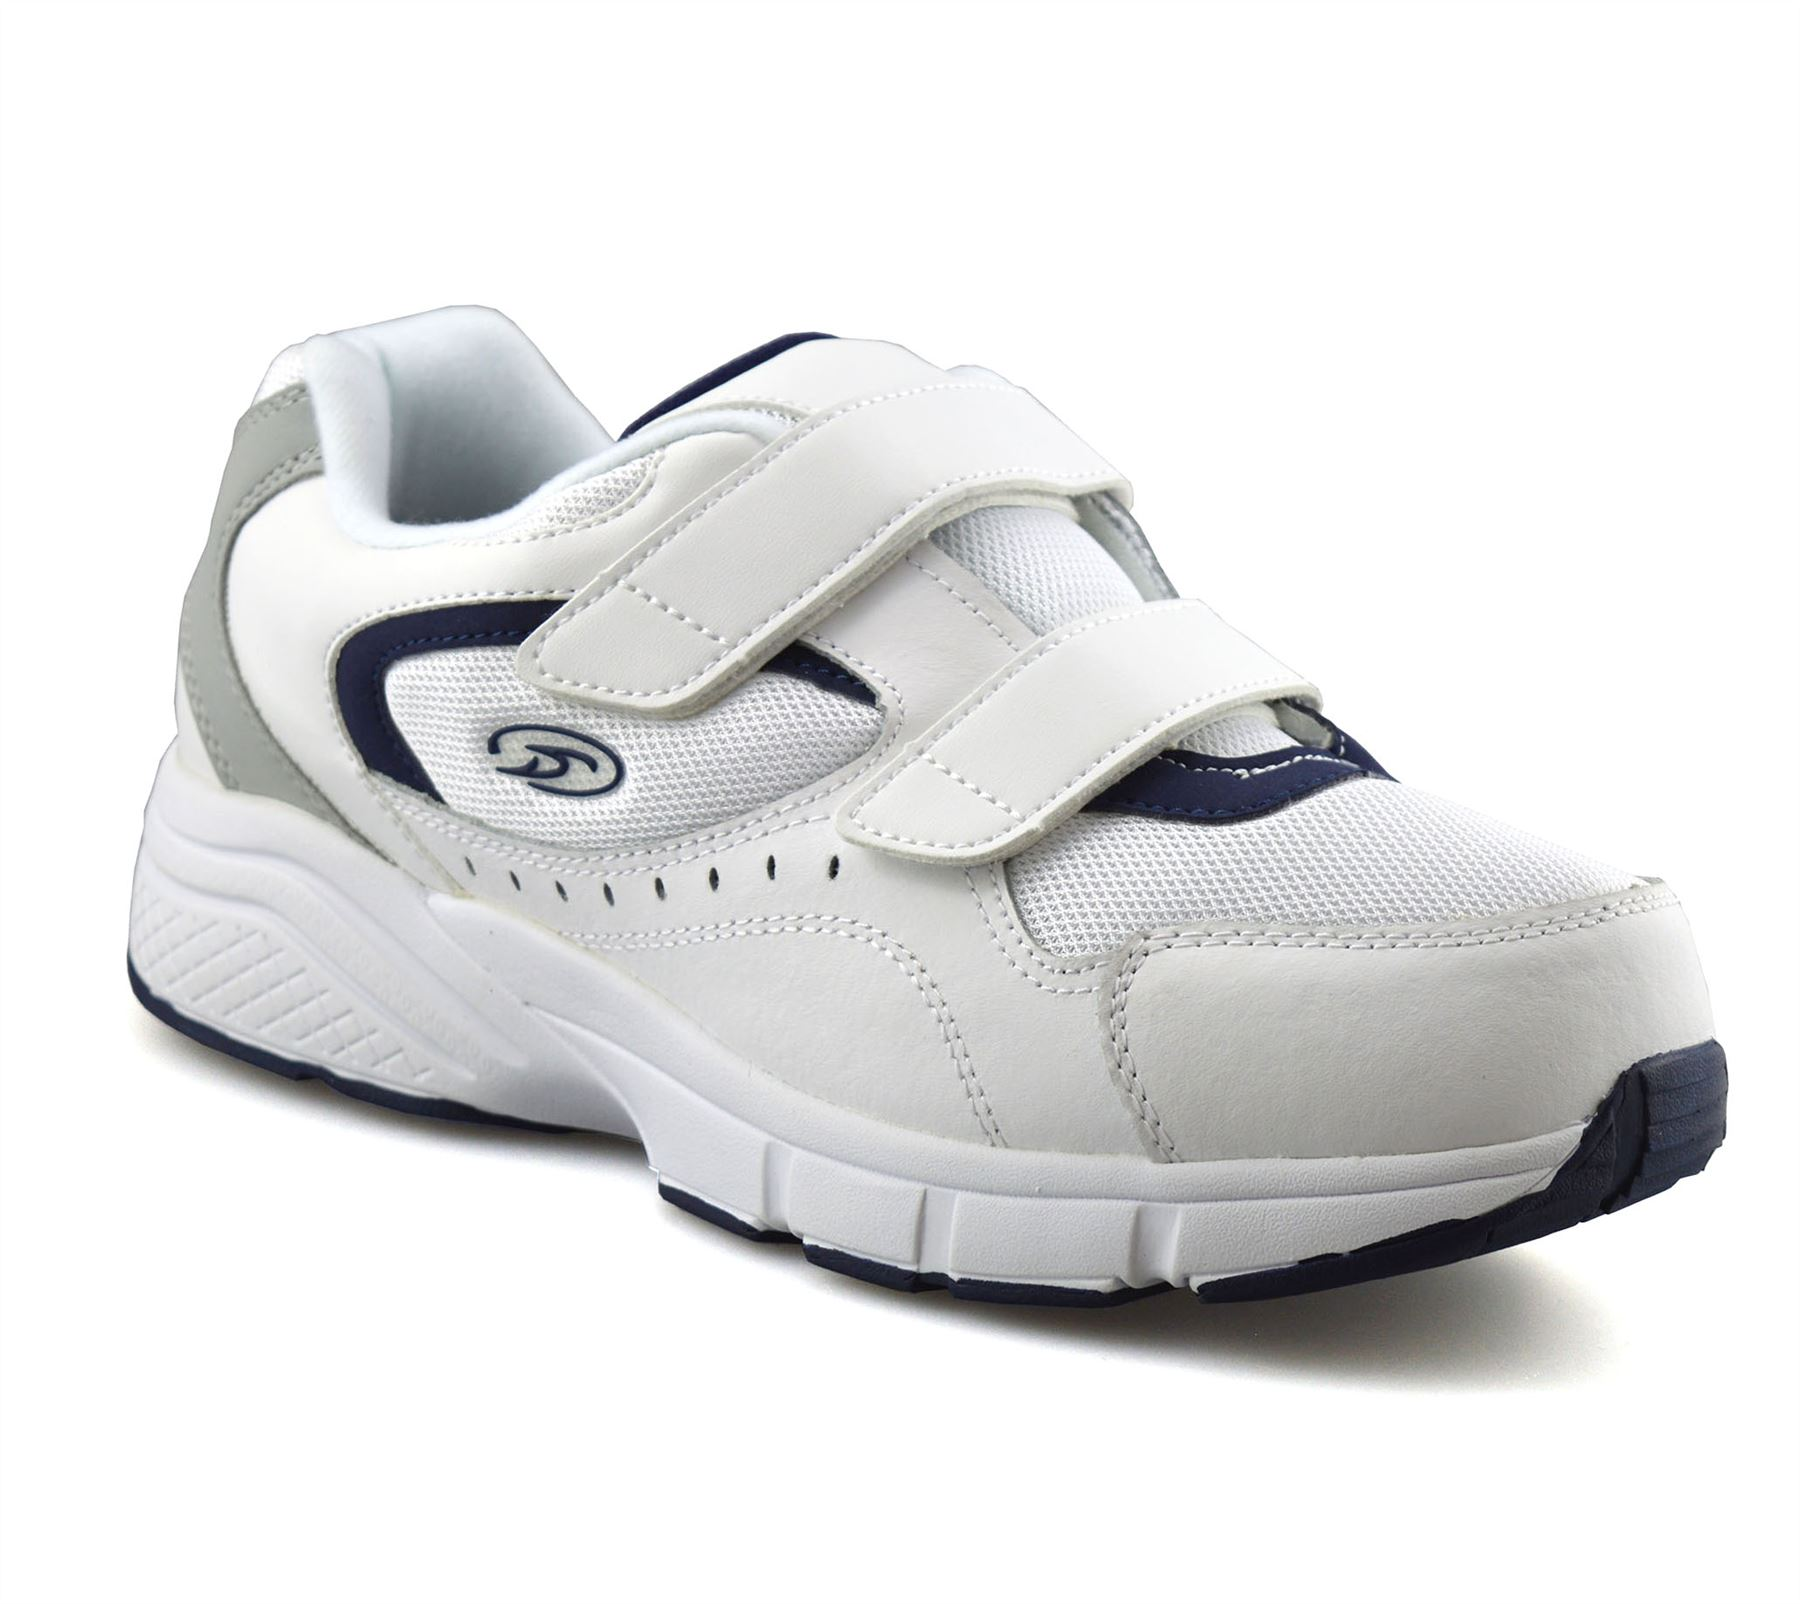 Mens-Dr-Scholls-Wide-Fit-Leather-Casual-Walking-Gym-Comfort-Trainers-Shoes-Size thumbnail 9